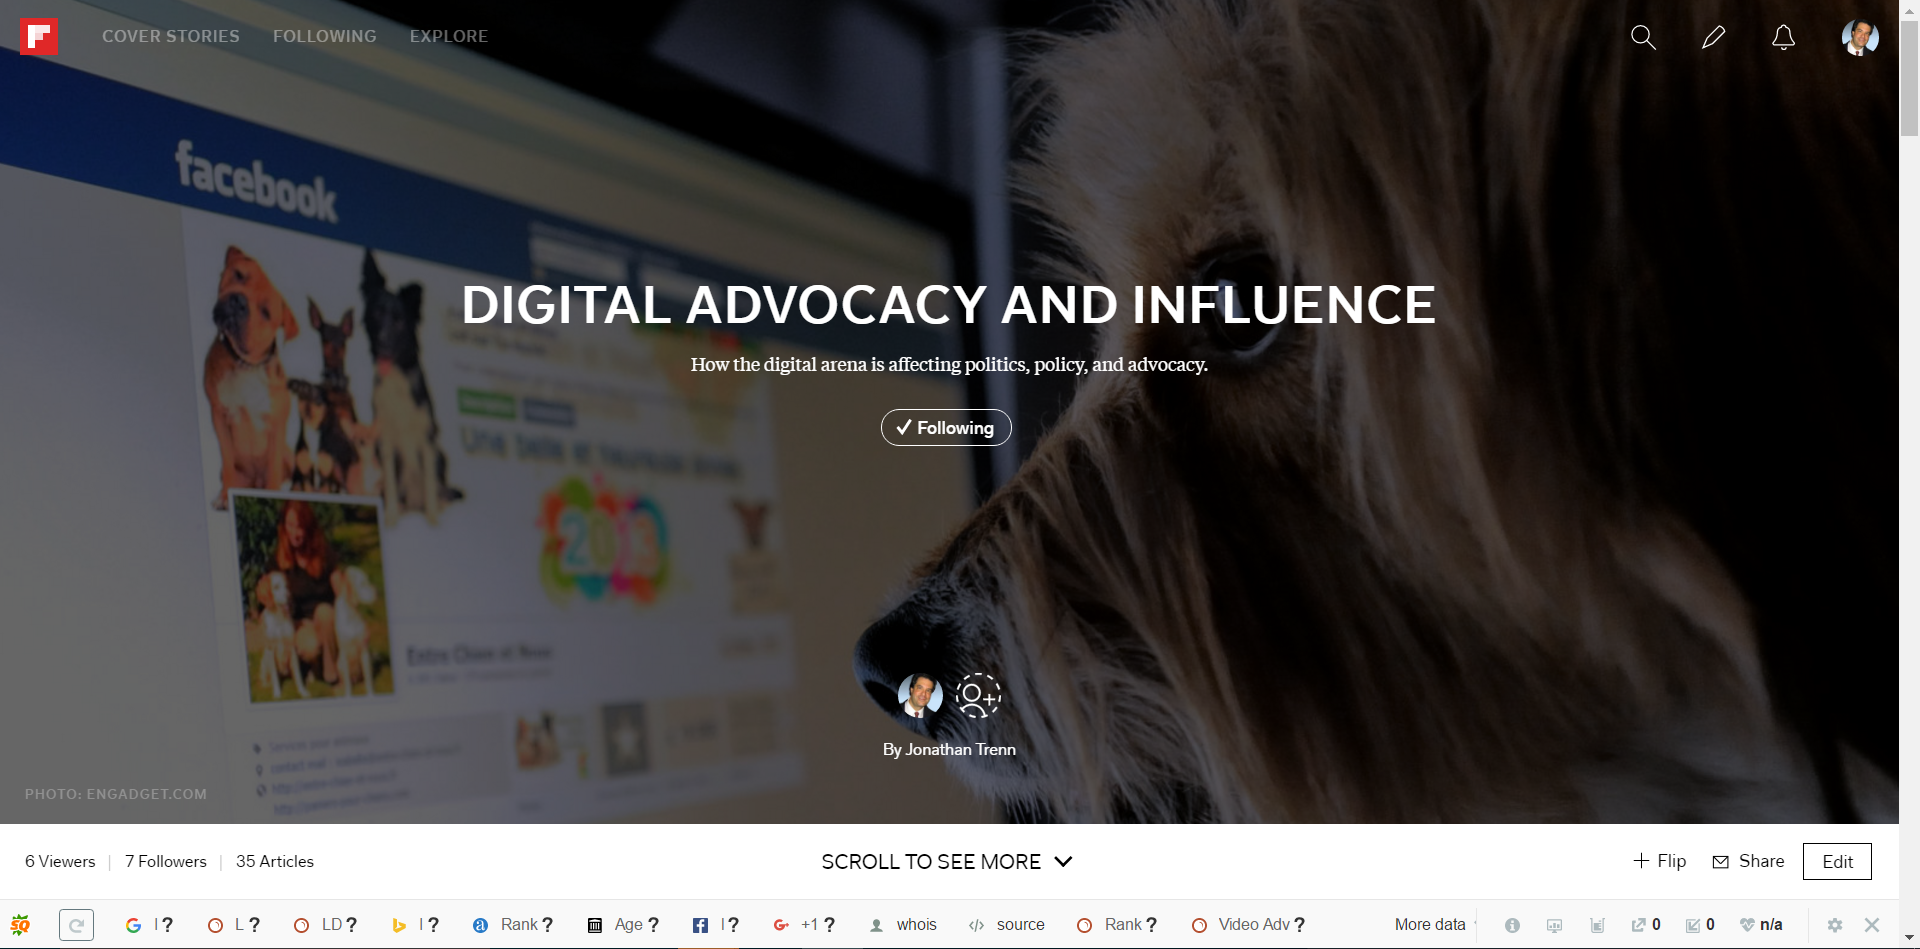 Digital Advocacy and Influence screen grab